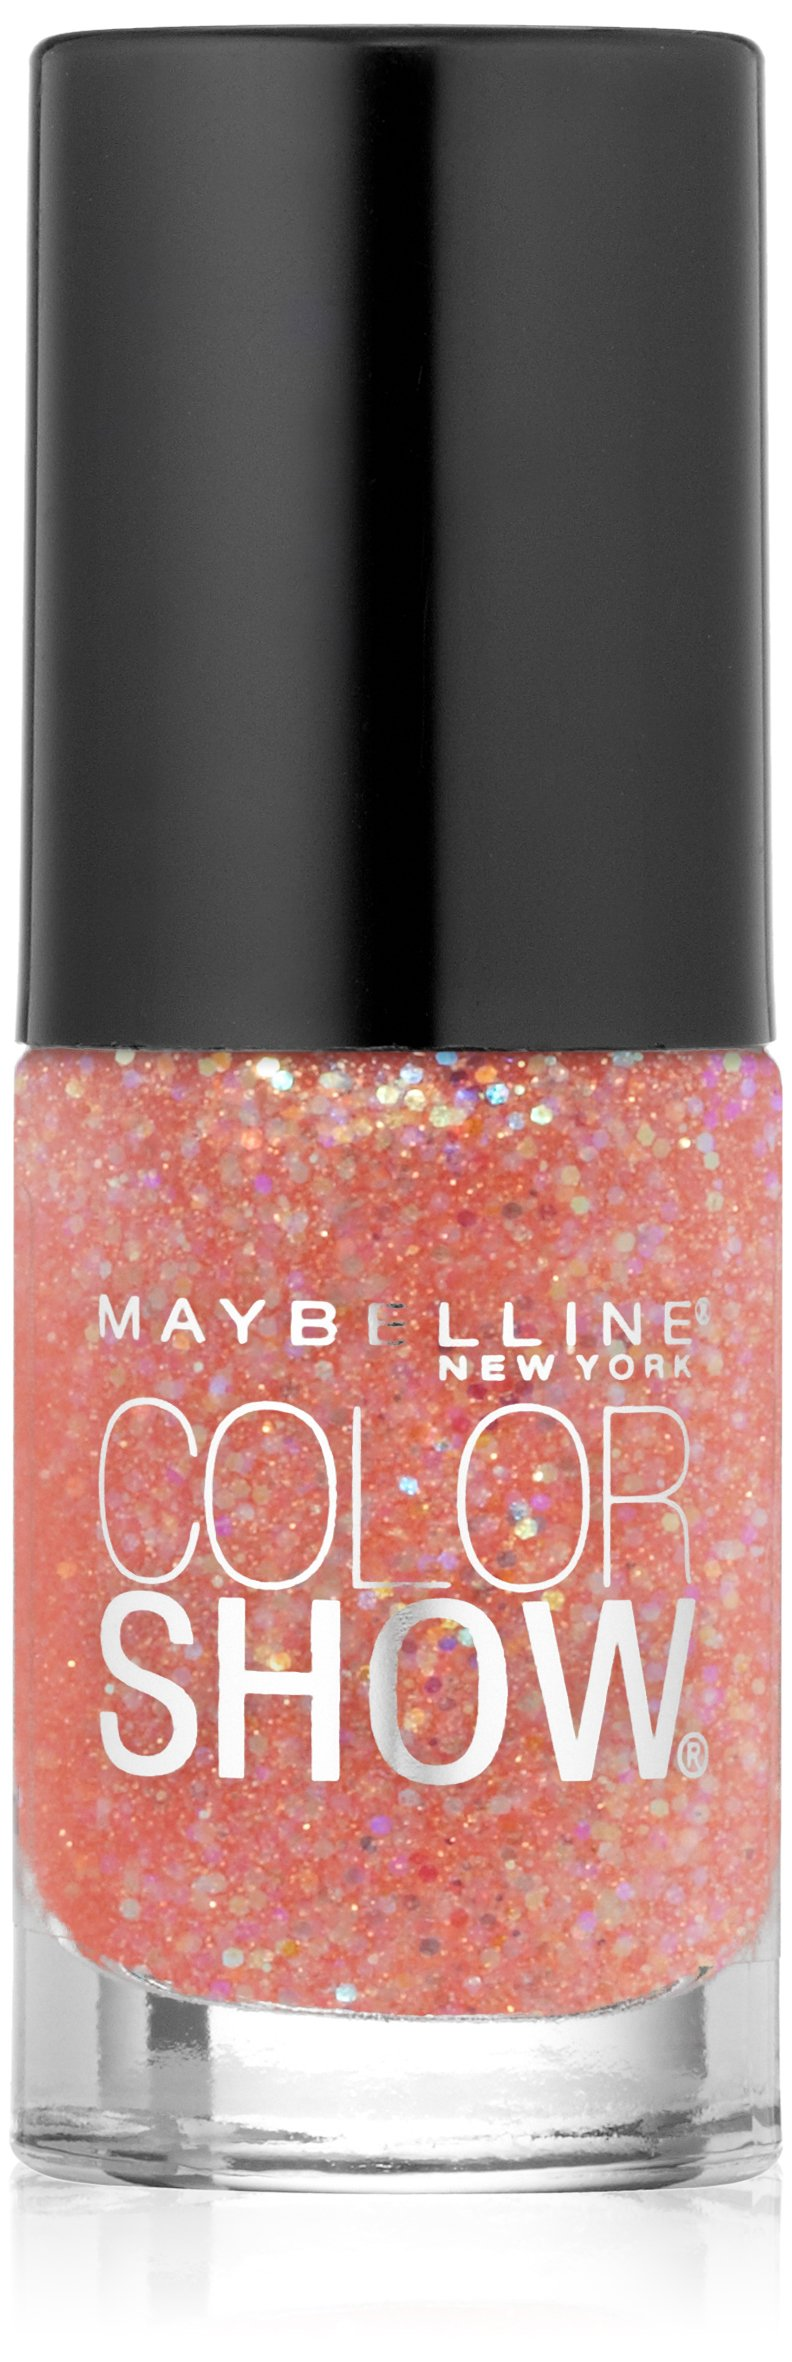 Amazon.com: Maybelline New York Color Show Nail Lacquer, Gilded Rose ...